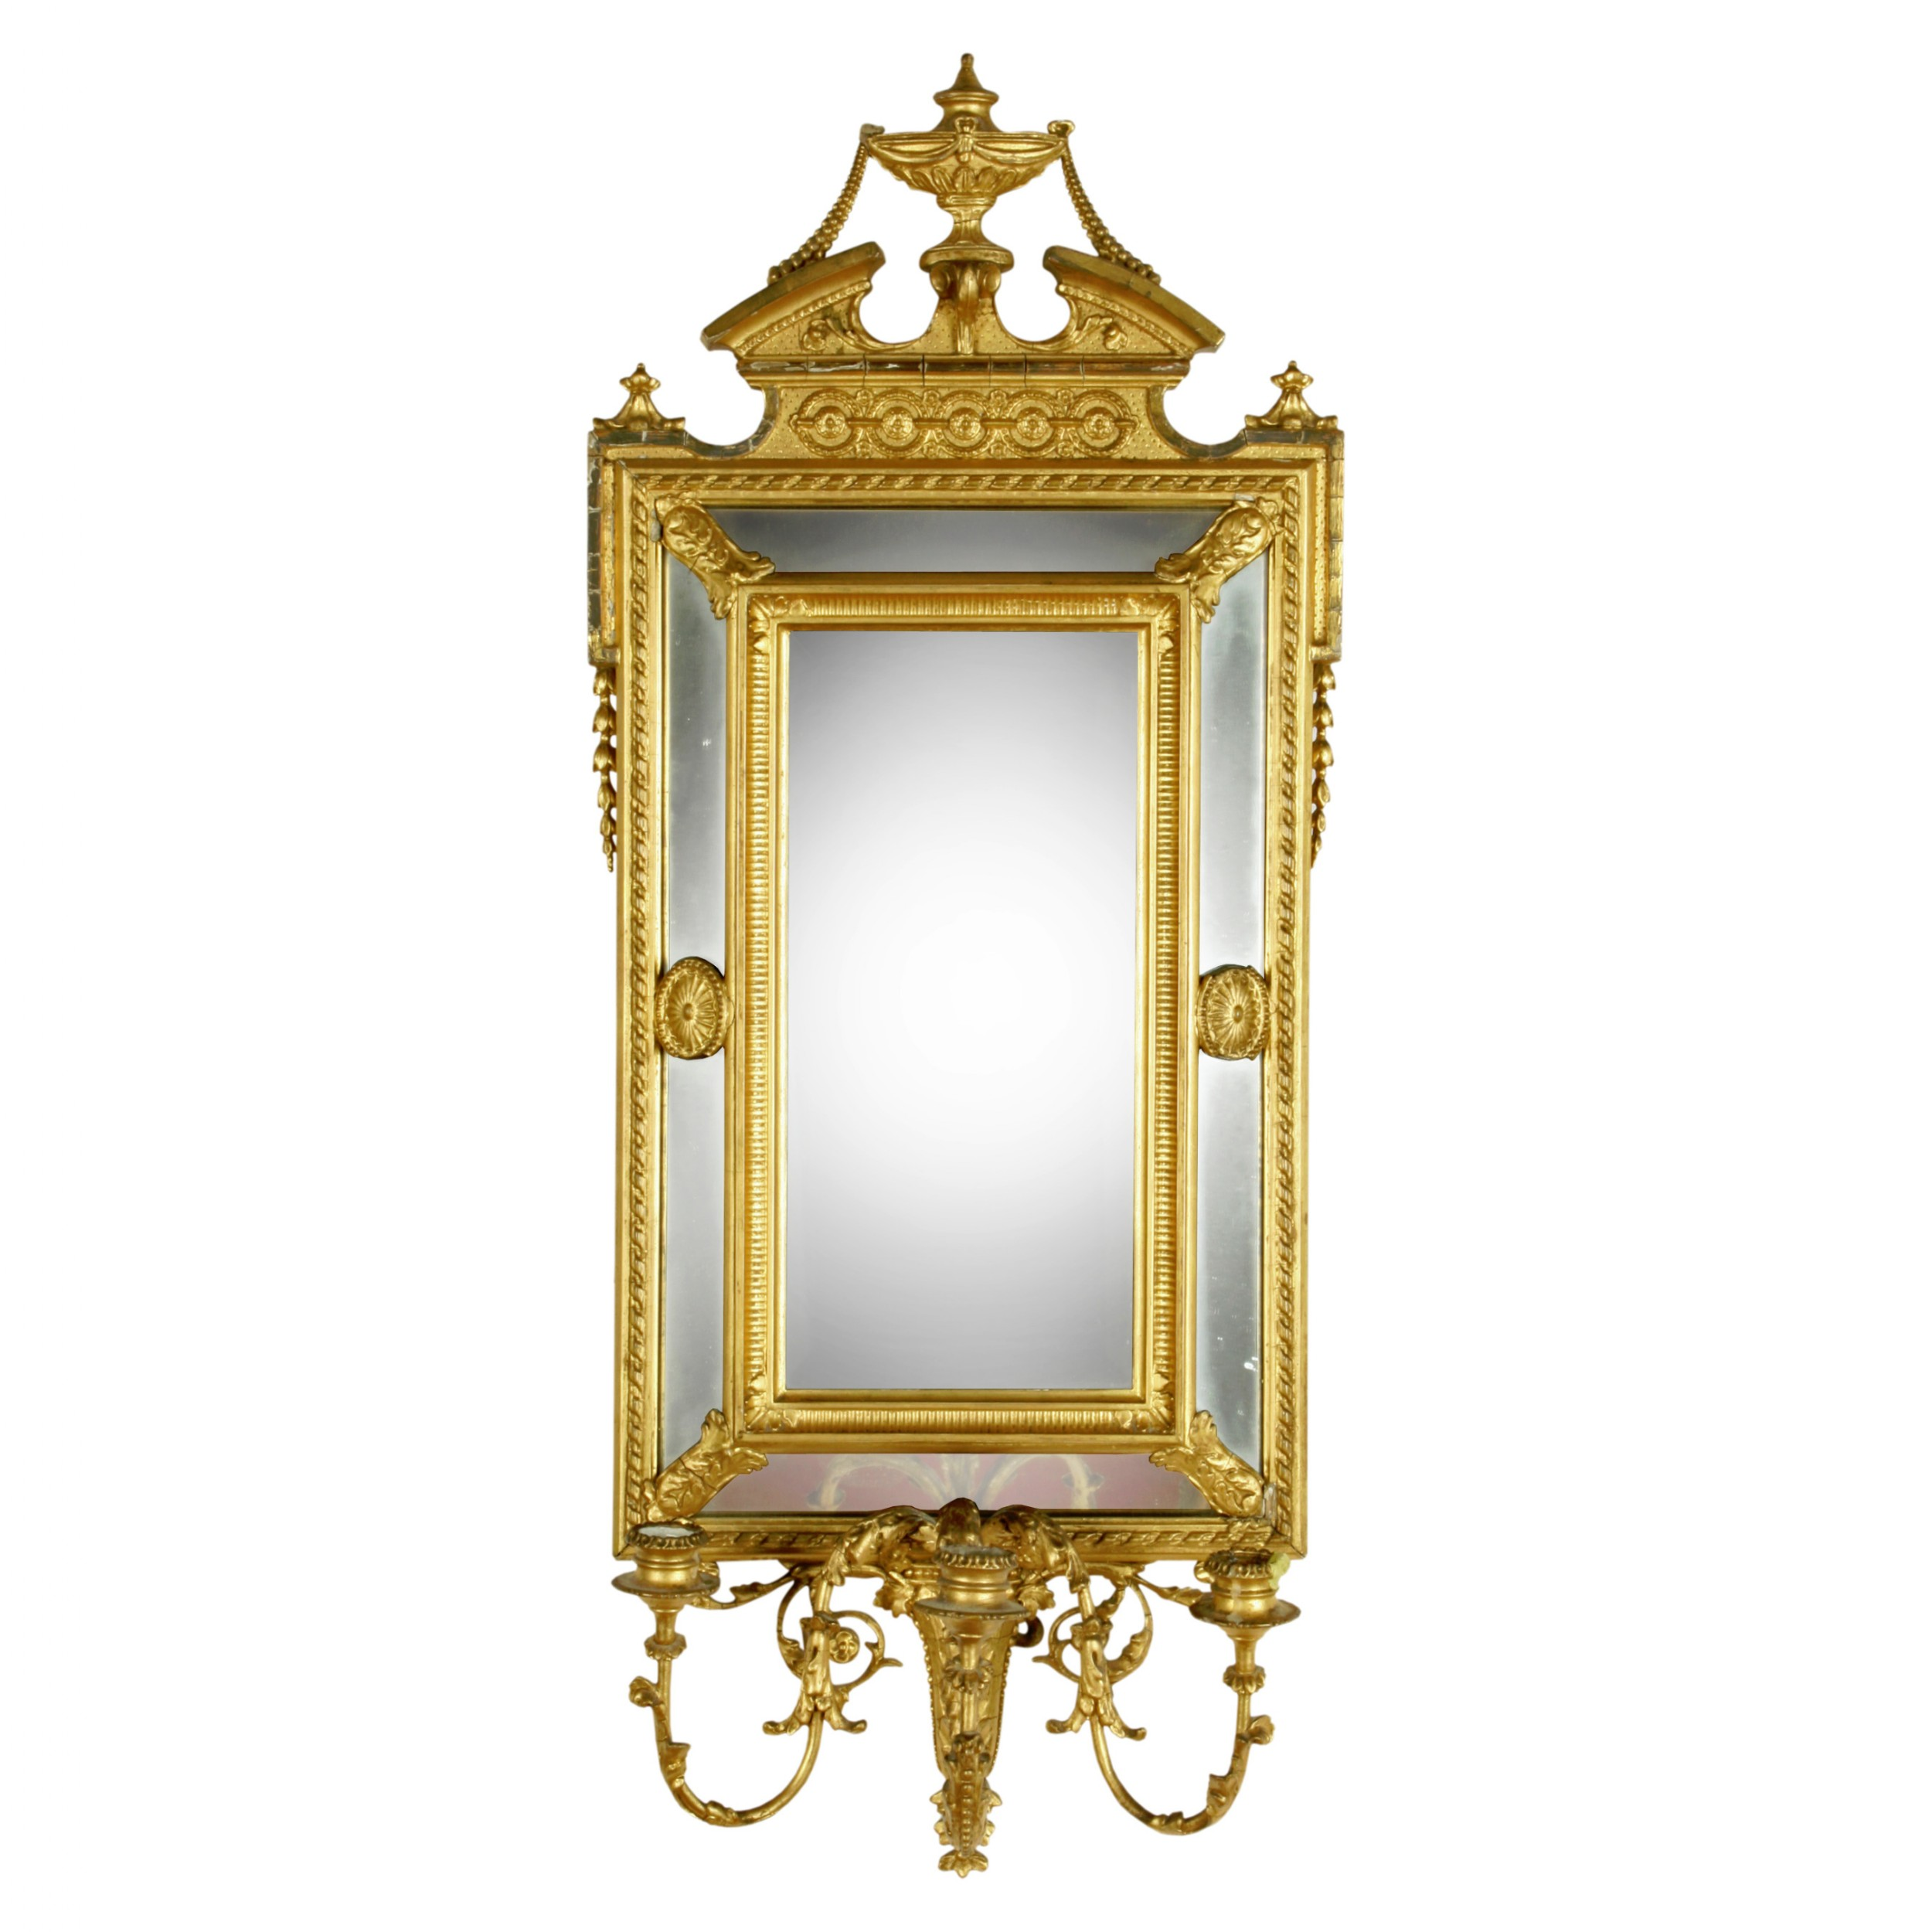 gilt wood gesso girandole mirror